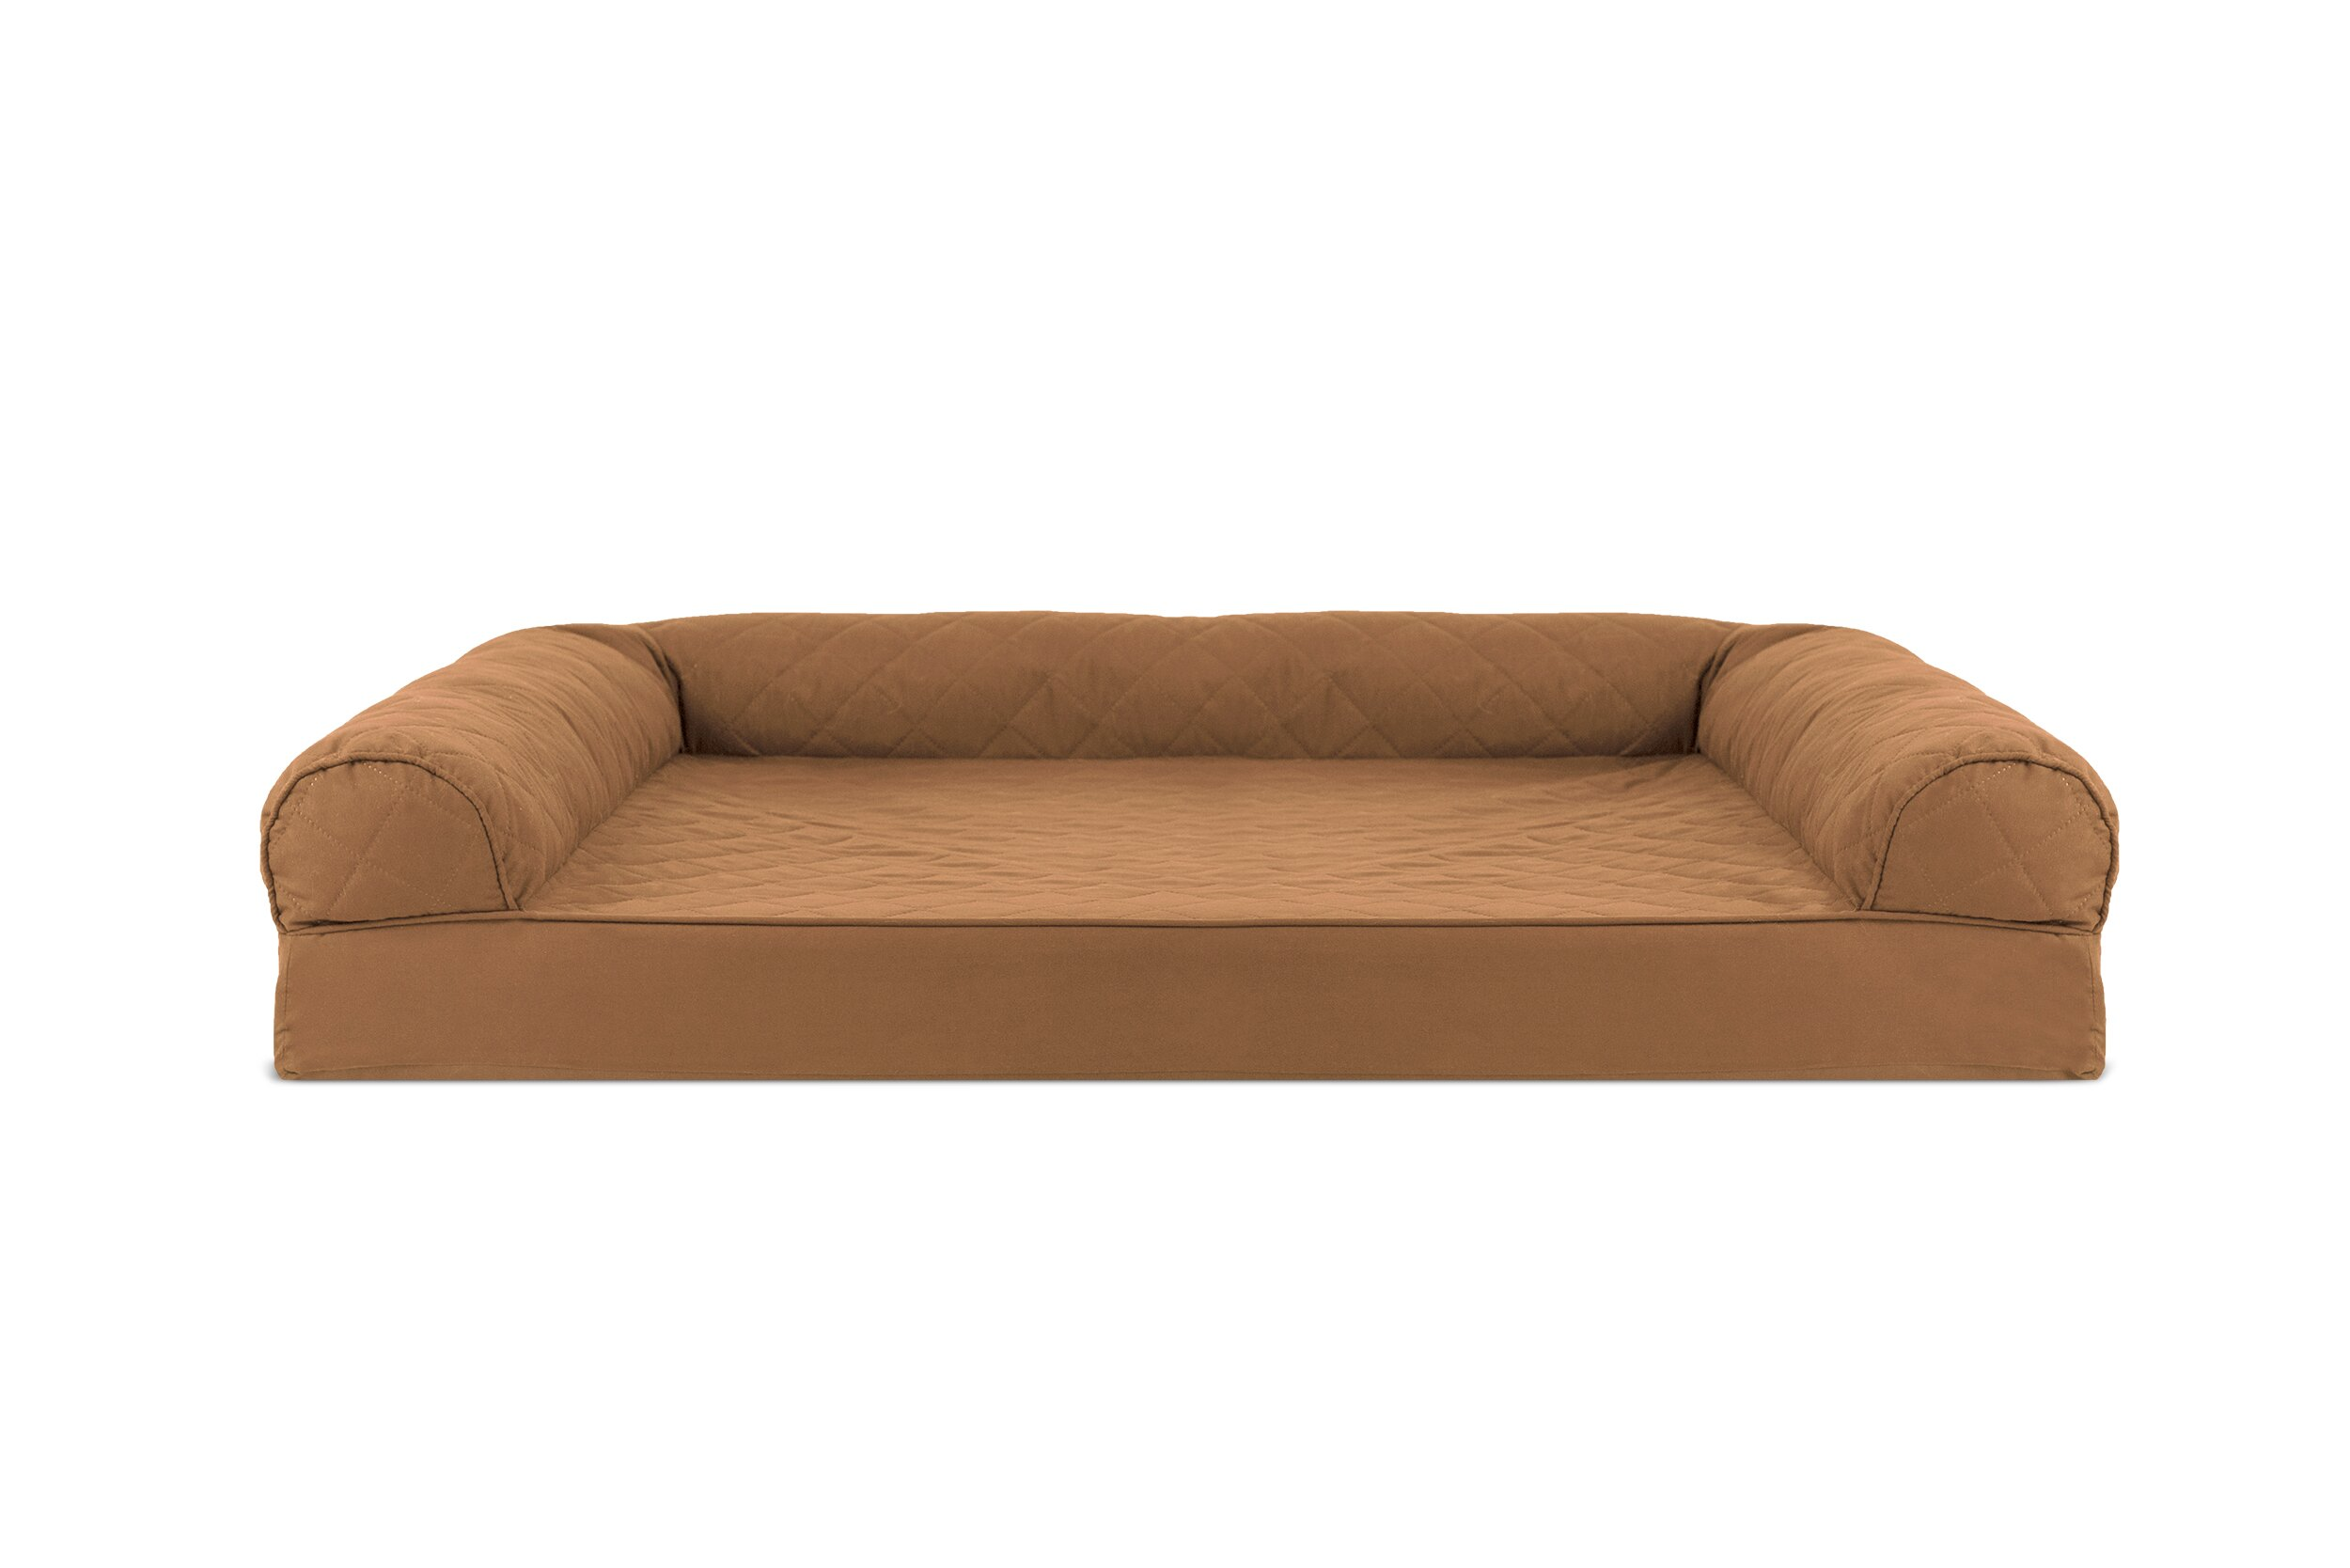 orthopedic sofa come bed online pet dog beds you ll love wayfair thesofa